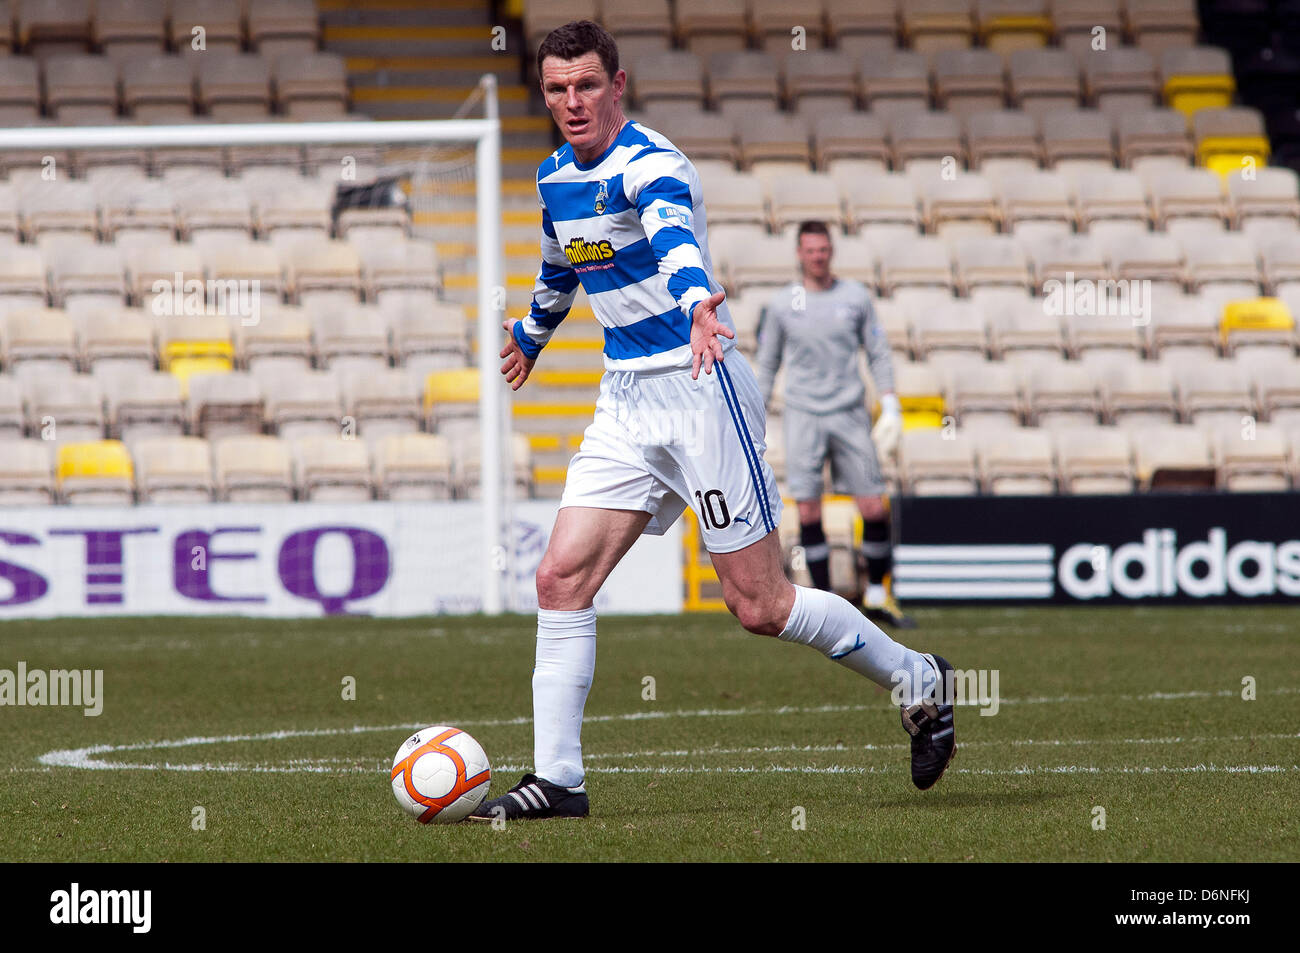 Livingston, Scotland, UK. Saturday 20th April 2013. Martin Hardie  in action during the Livingston v Morton, SFL - Stock Image